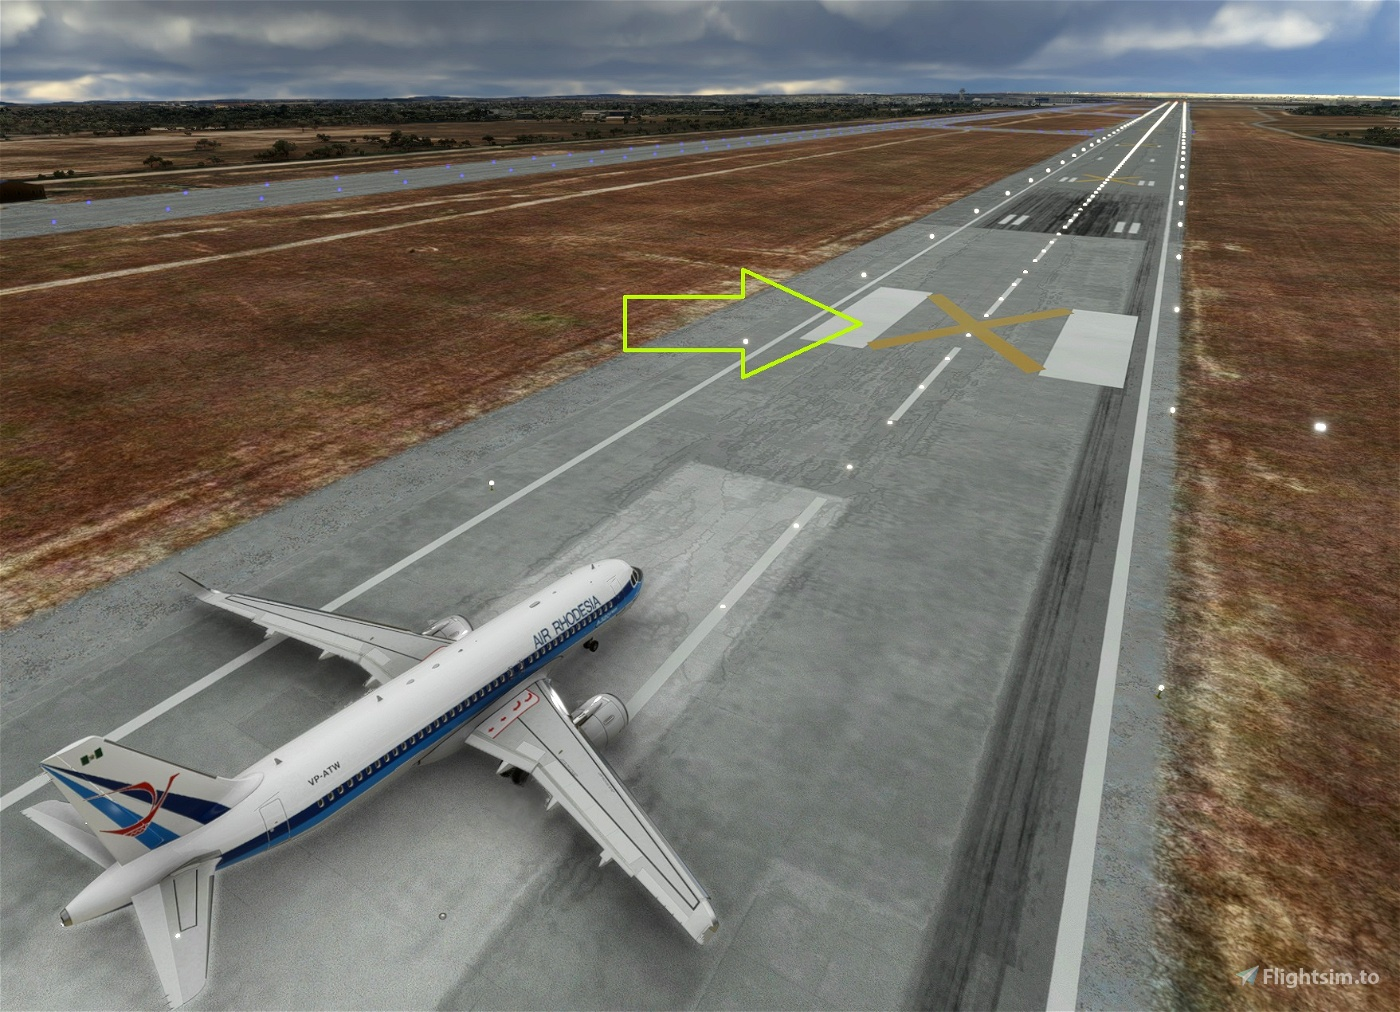 Simple fix to re-open all closed runways if needed at default airports. (removes yellow crosses) Microsoft Flight Simulator